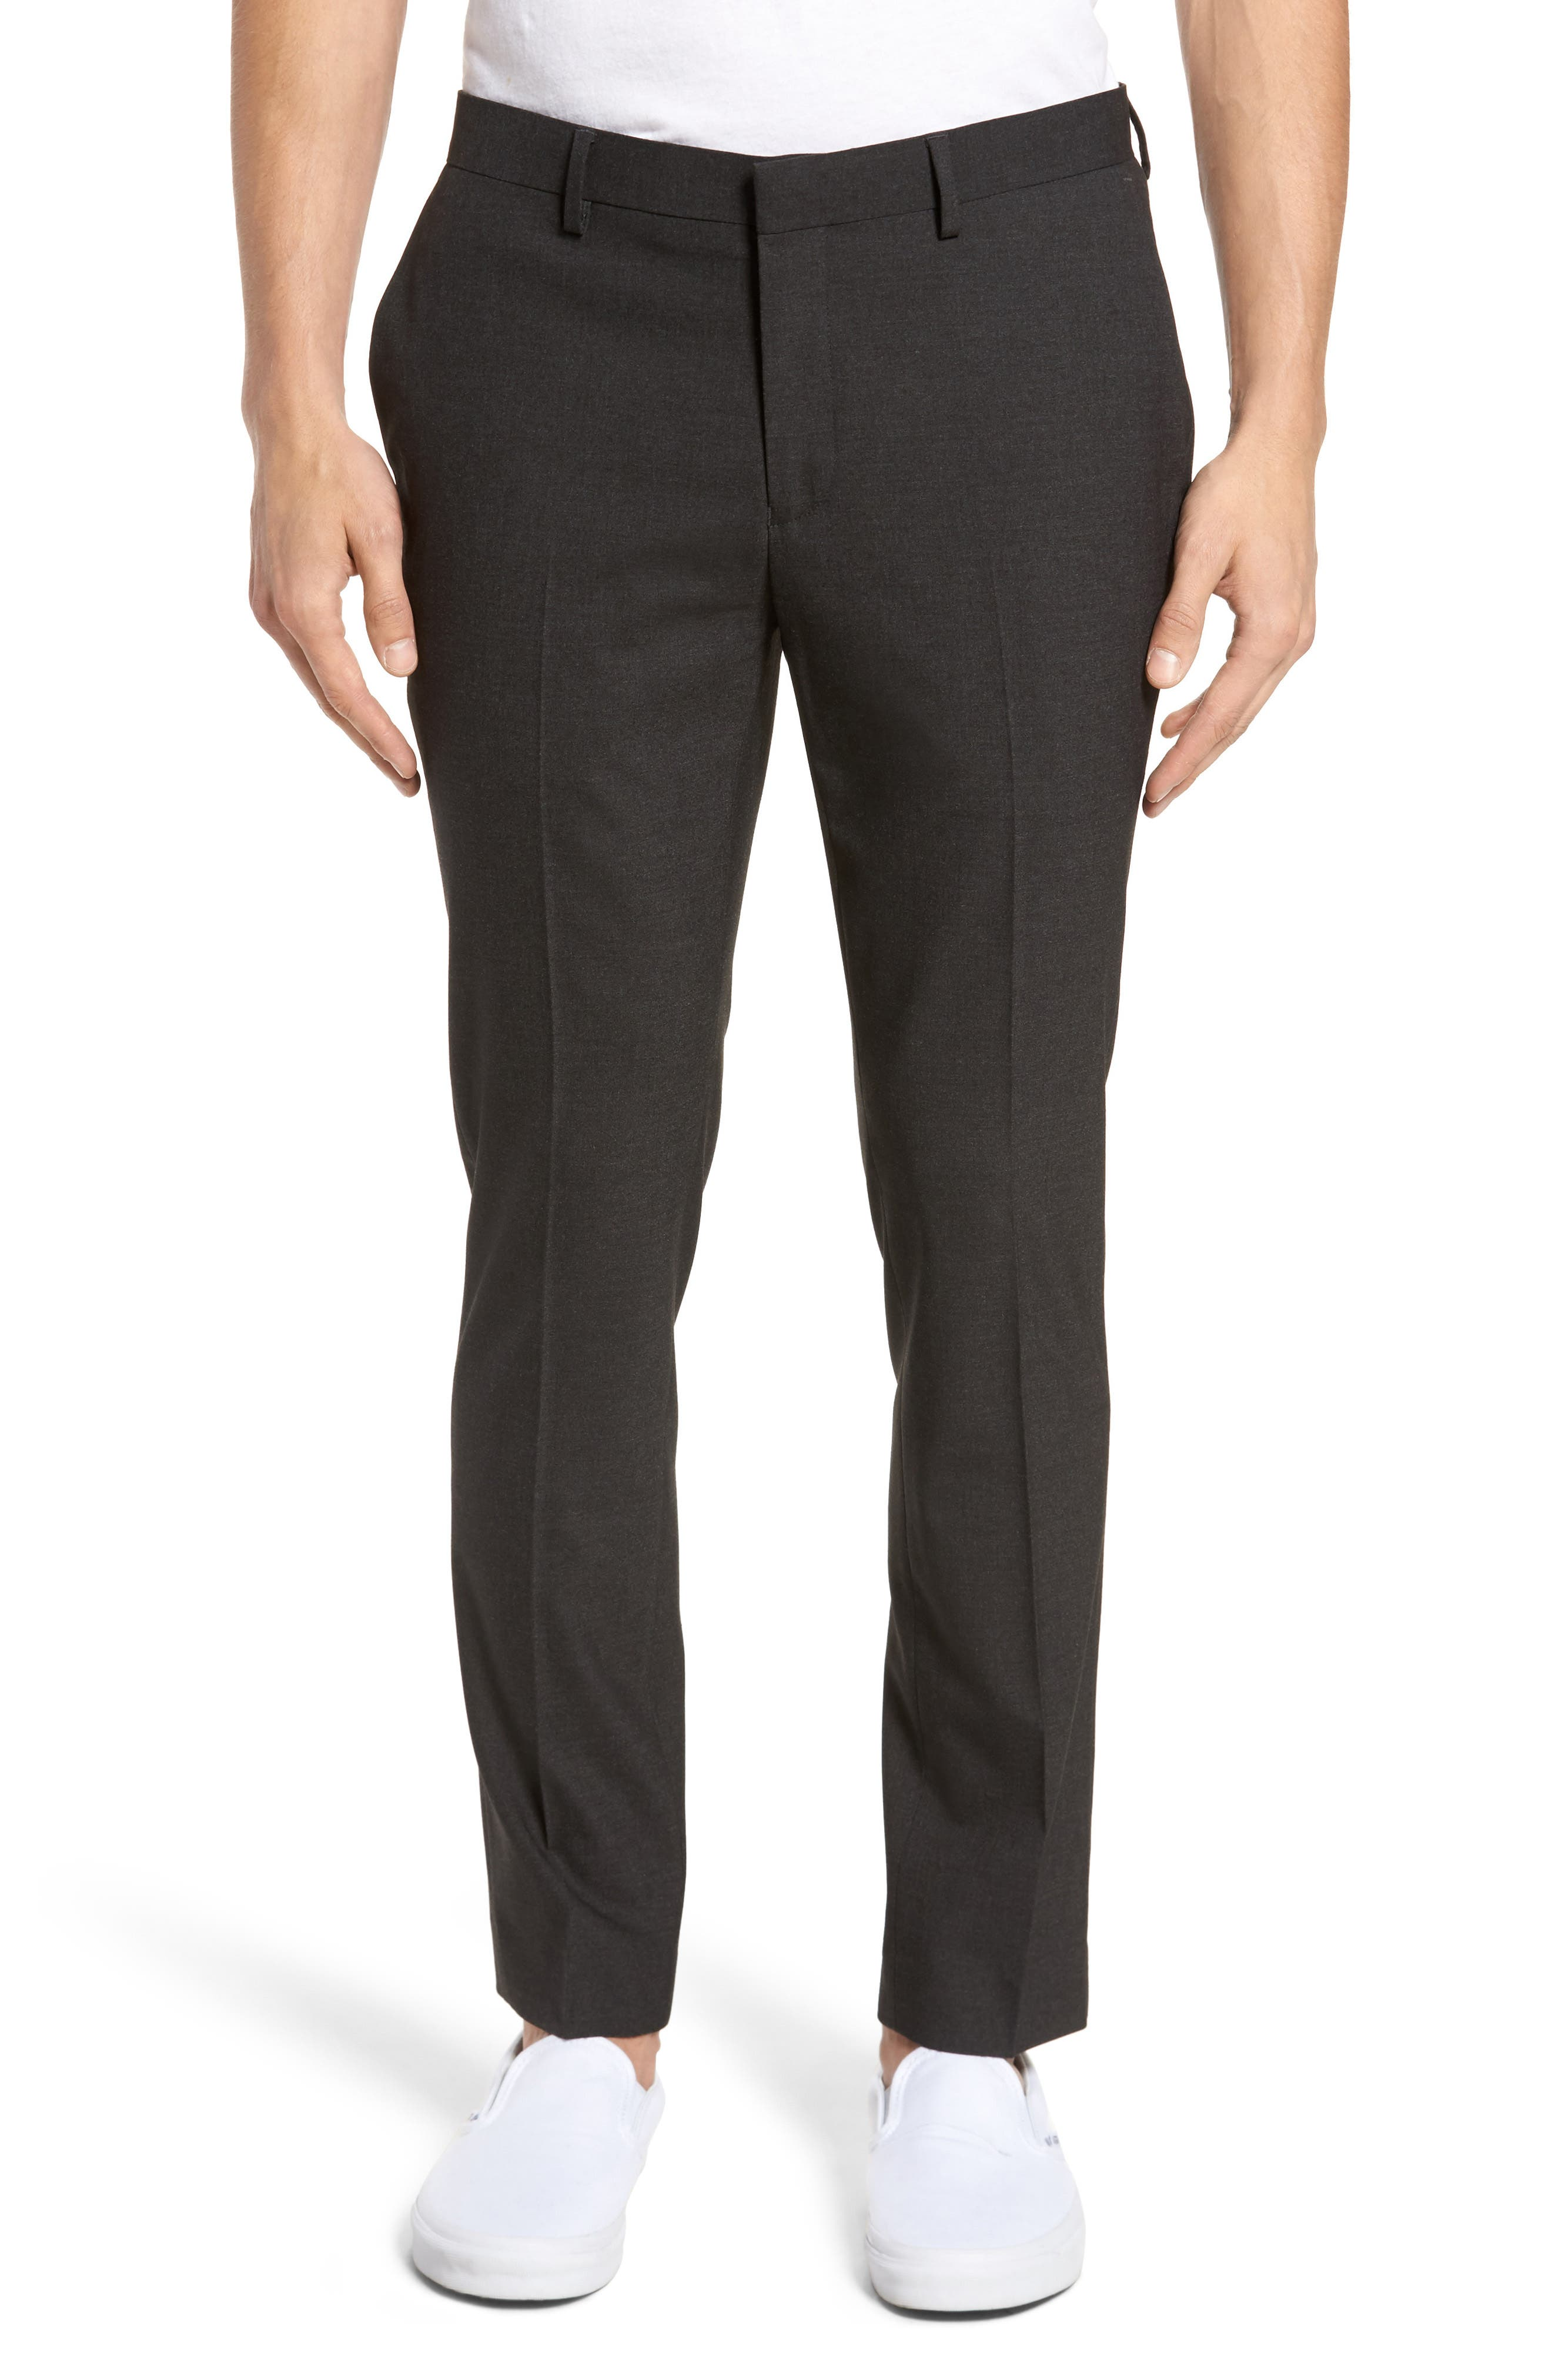 Black Skinny Fit Trousers,                             Main thumbnail 1, color,                             Charcoal